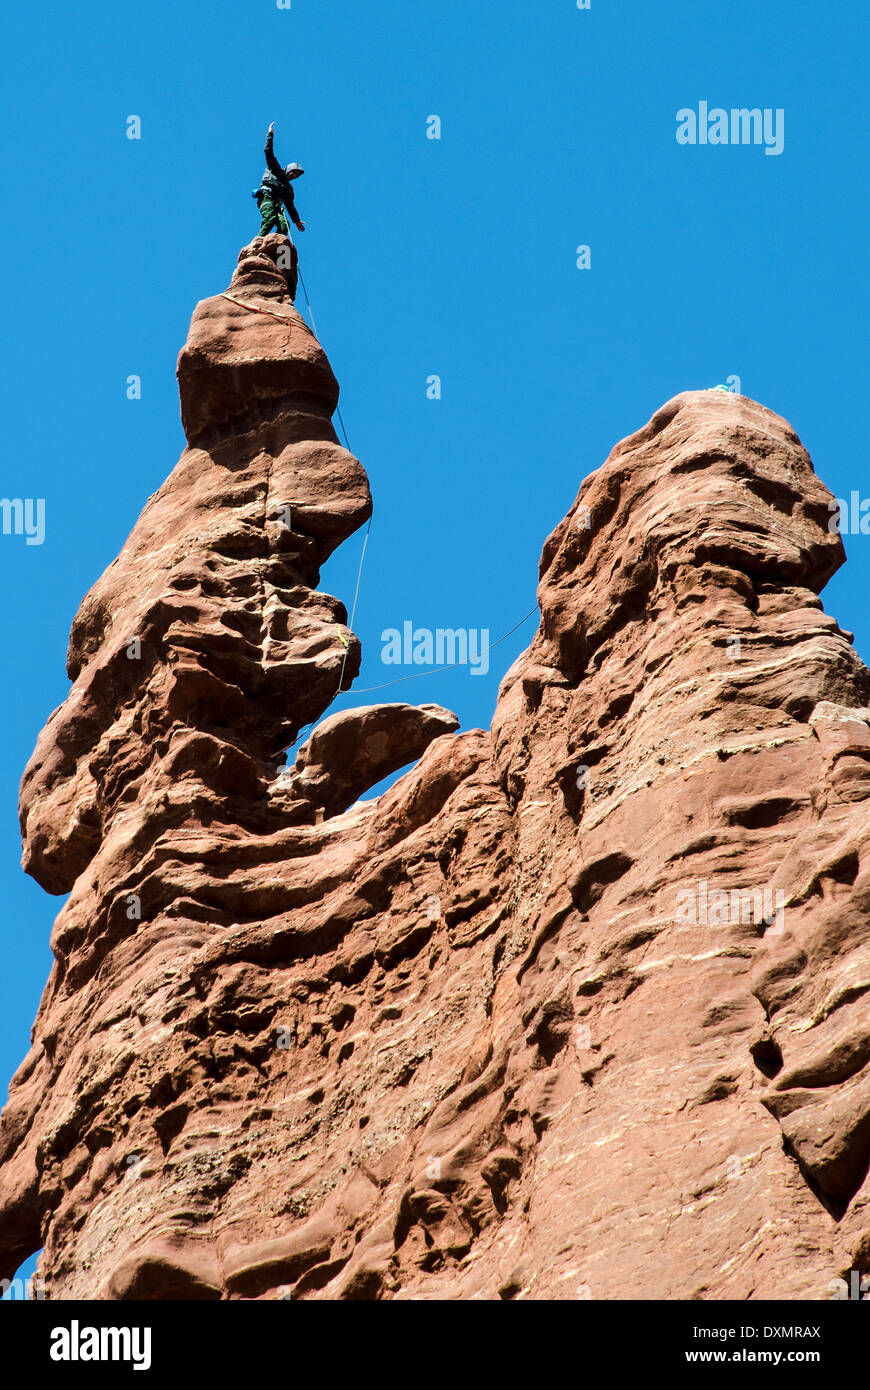 Rock Climbers on Fisher Towers Moab Utah USA - Stock Image